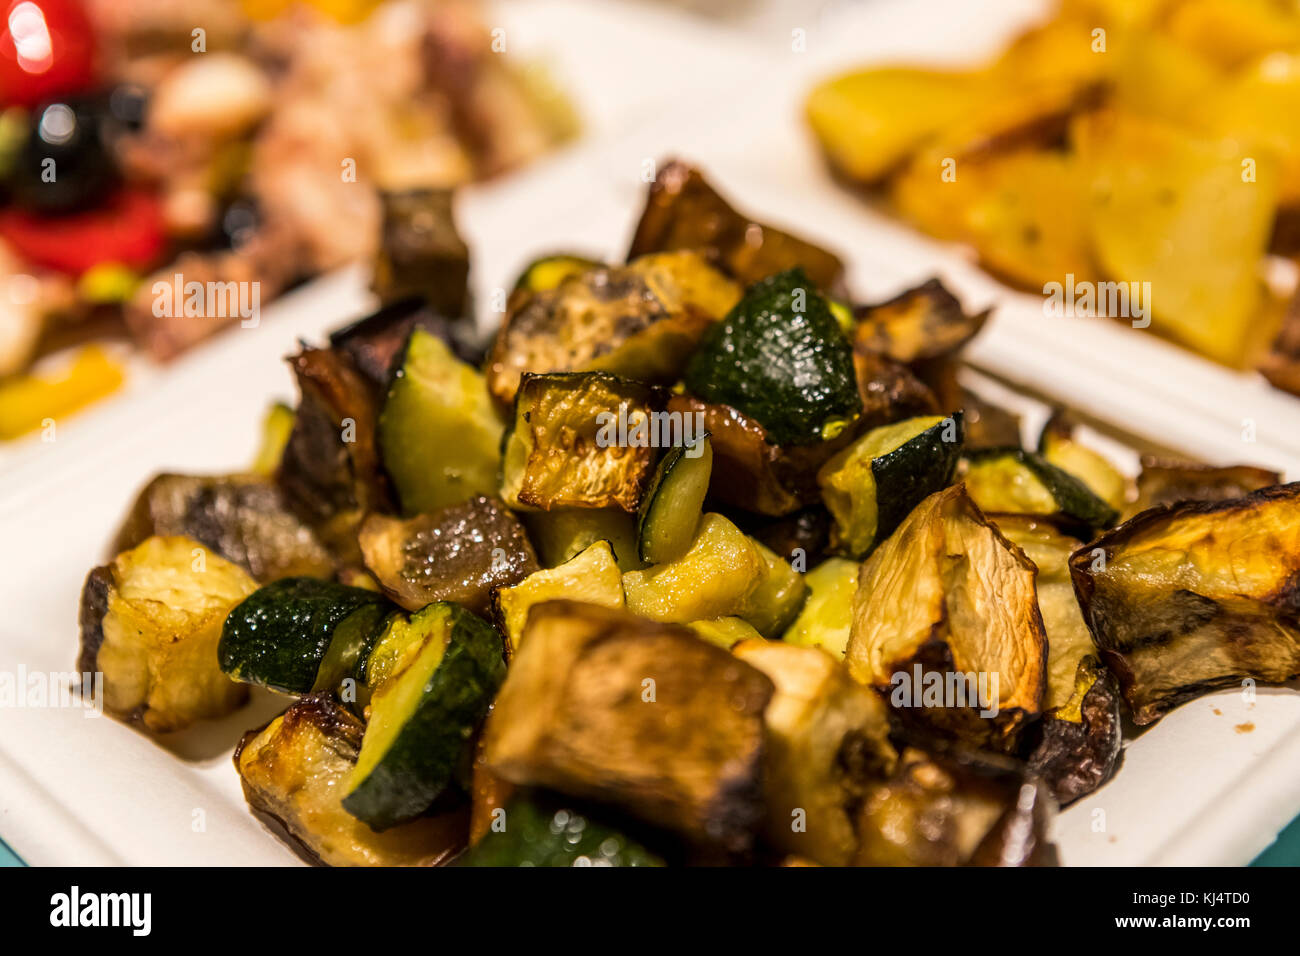 Fish and seafood served by weight at Pescheria Del Pavaglione in the Il Mercato Di Mezzo. Bologna city life, Italy. - Stock Image